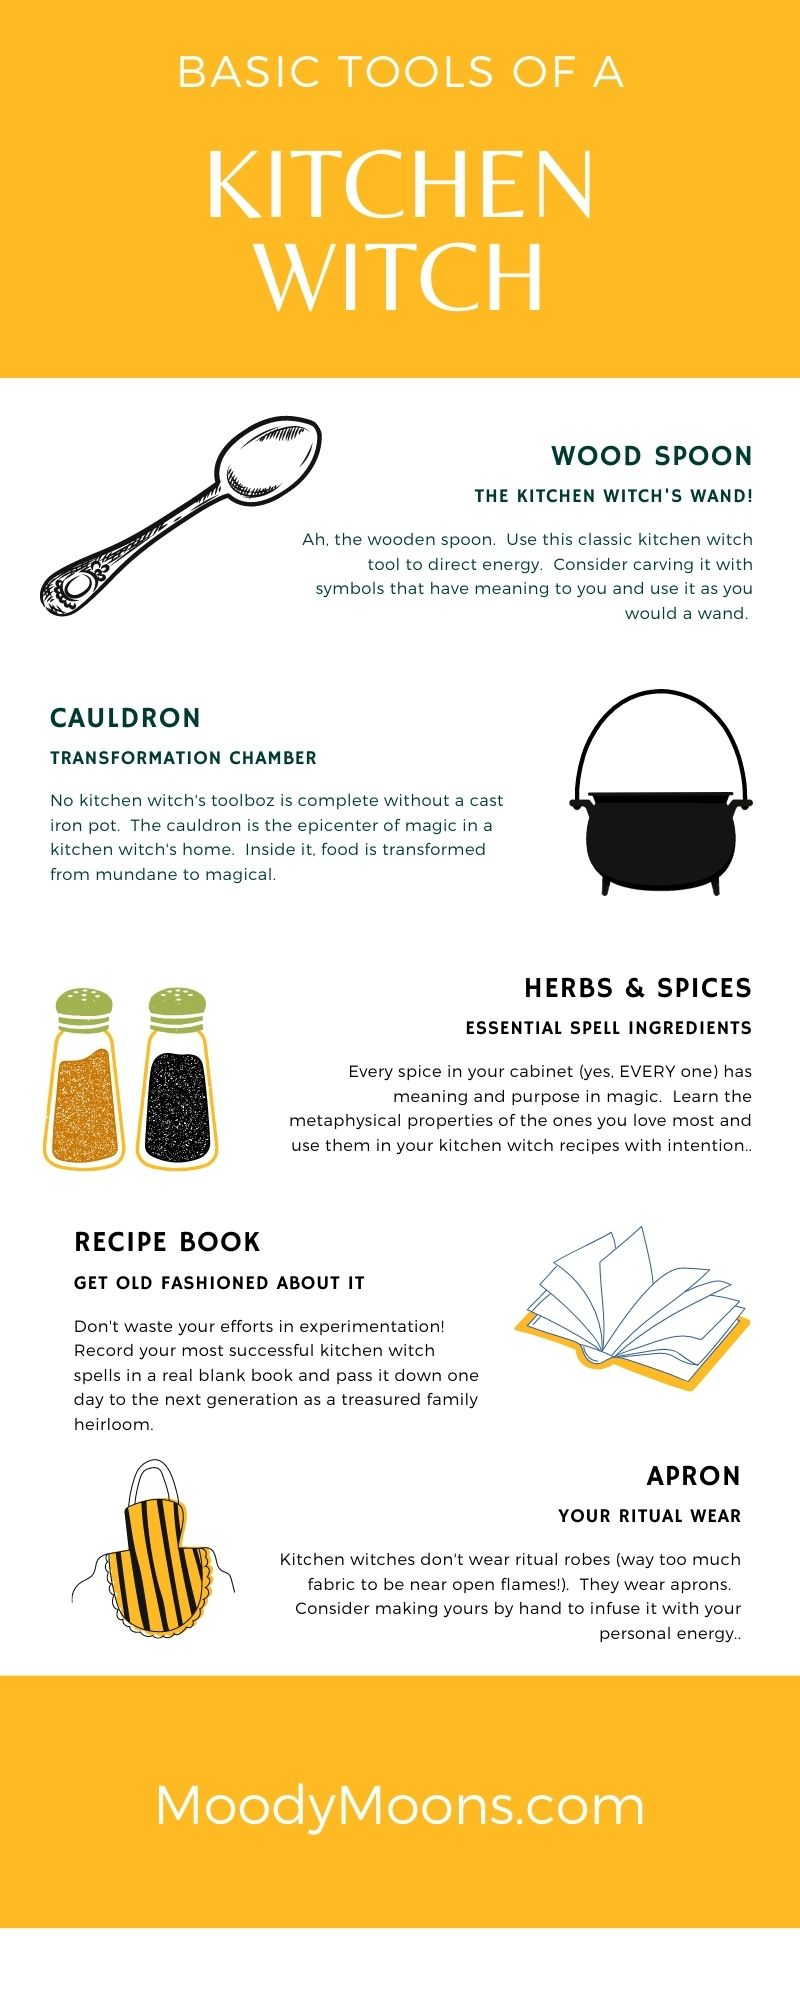 Tools of the Craft According to Your Path: Essential Tools of the Kitchen Witch